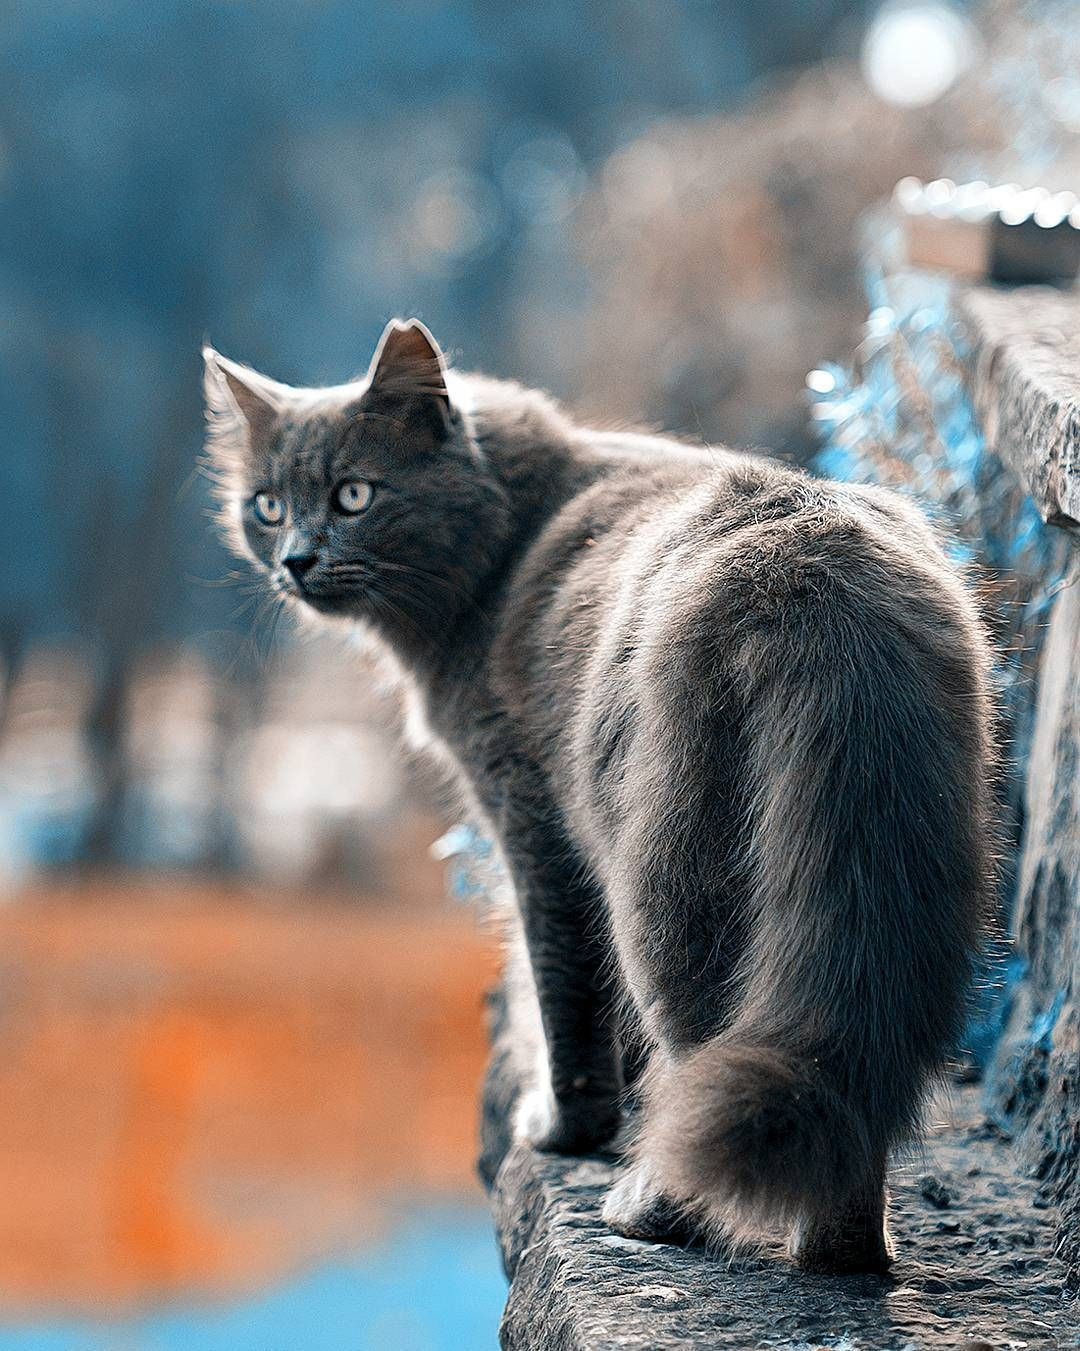 Pin By Vanessa Lechuga On Cats In 2020 Cat Breeds Beautiful Cats Cute Cats